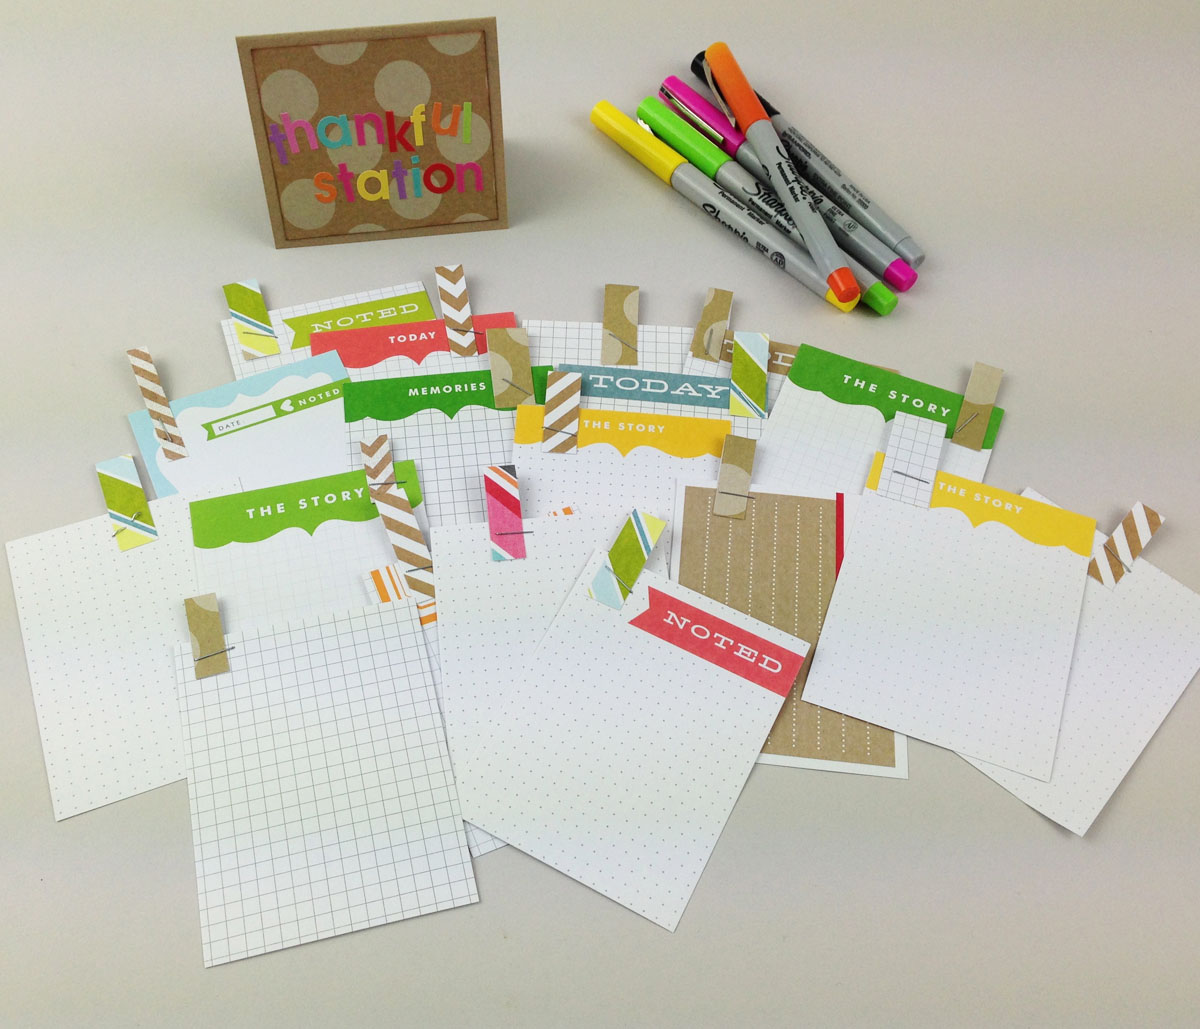 Thankful Station on the mambi blog. Say what you're thankful for in your POCKET PAGES scrapbook album. Great way to document your Thanksgiving.